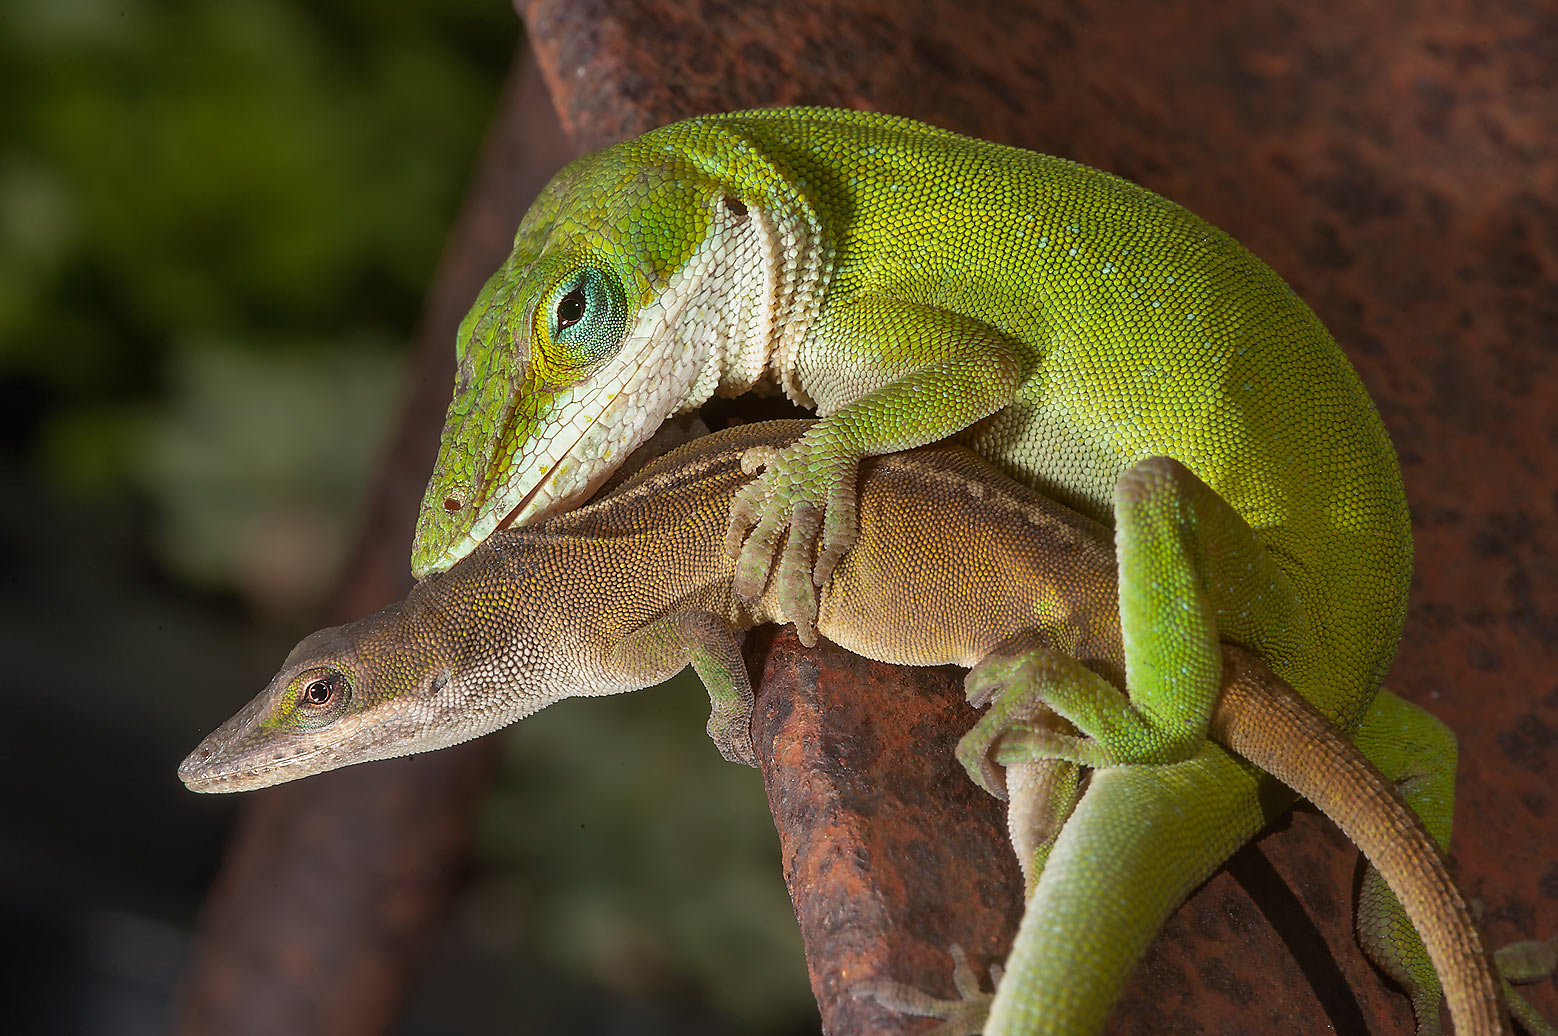 Mating green anole lizards in Antique Rose Emporium. Independence, Texas